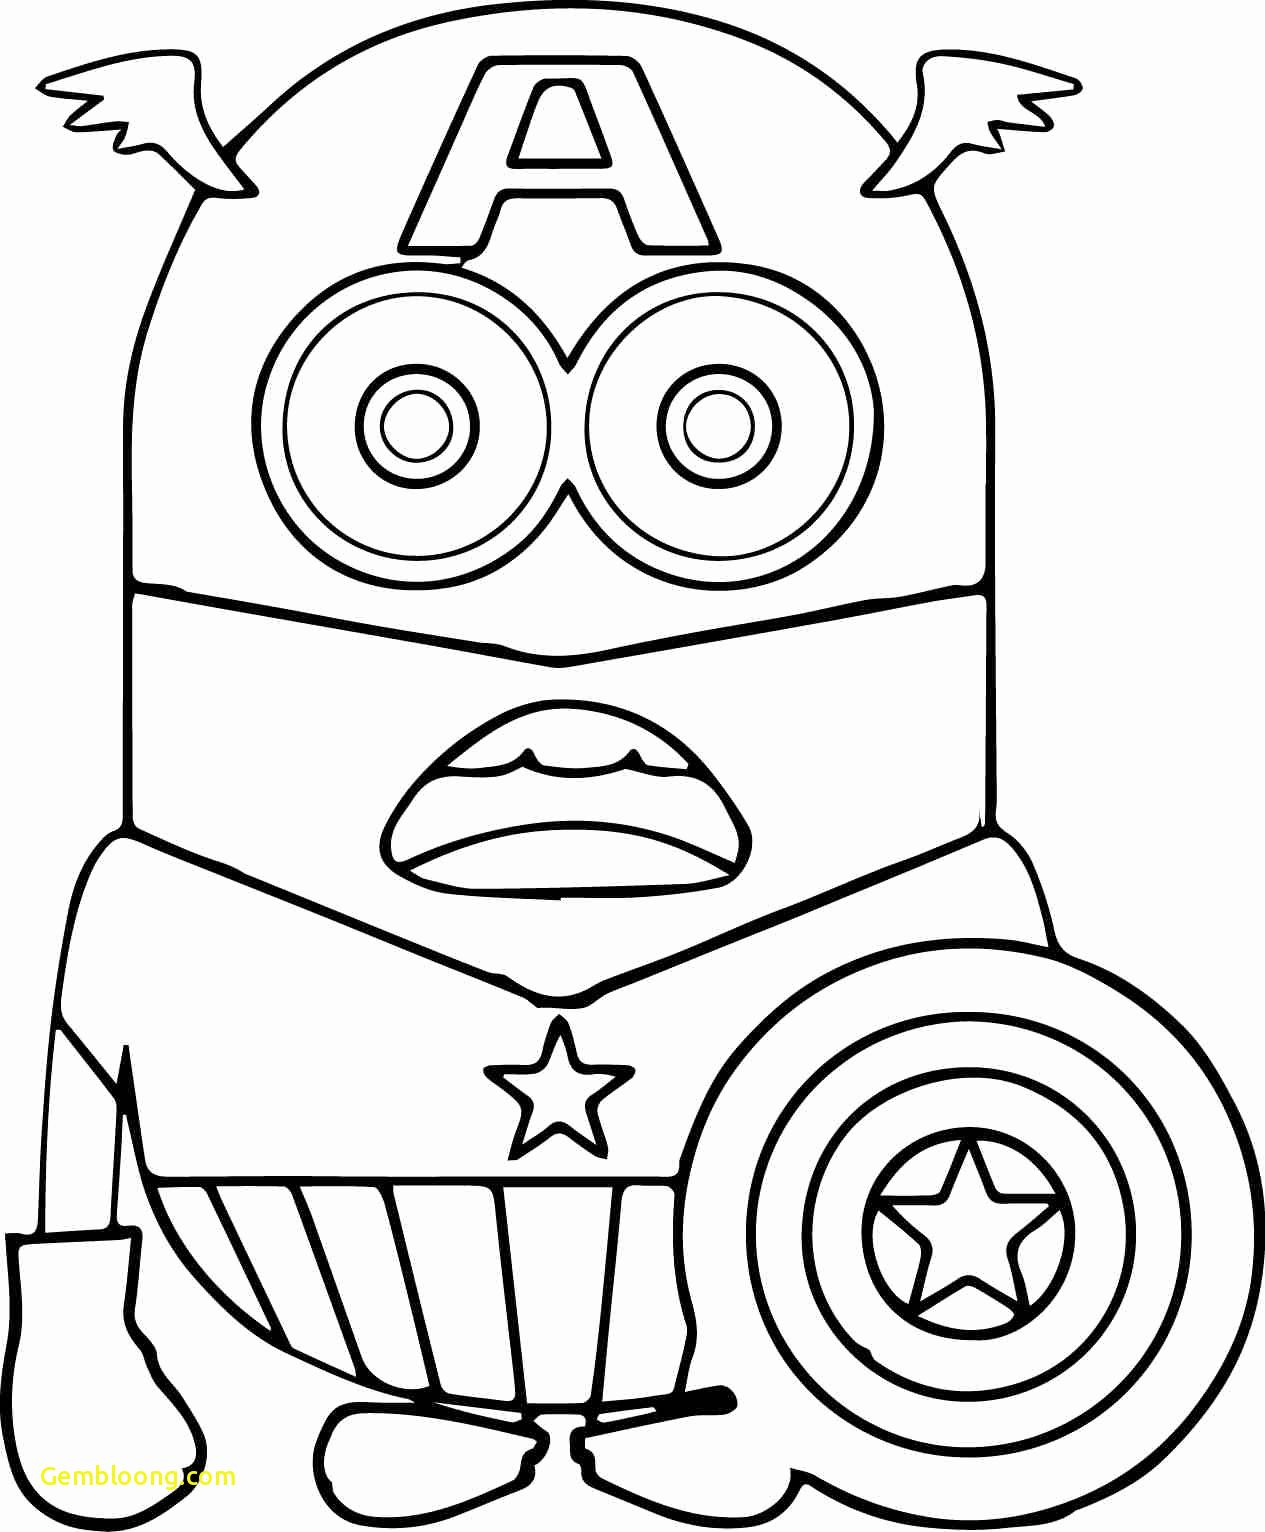 Minion Coloring Pages Best Of Coloring Pages Free Minion Coloring Pages Inspirational In 2020 Avengers Coloring Pages Minions Coloring Pages Superhero Coloring Pages